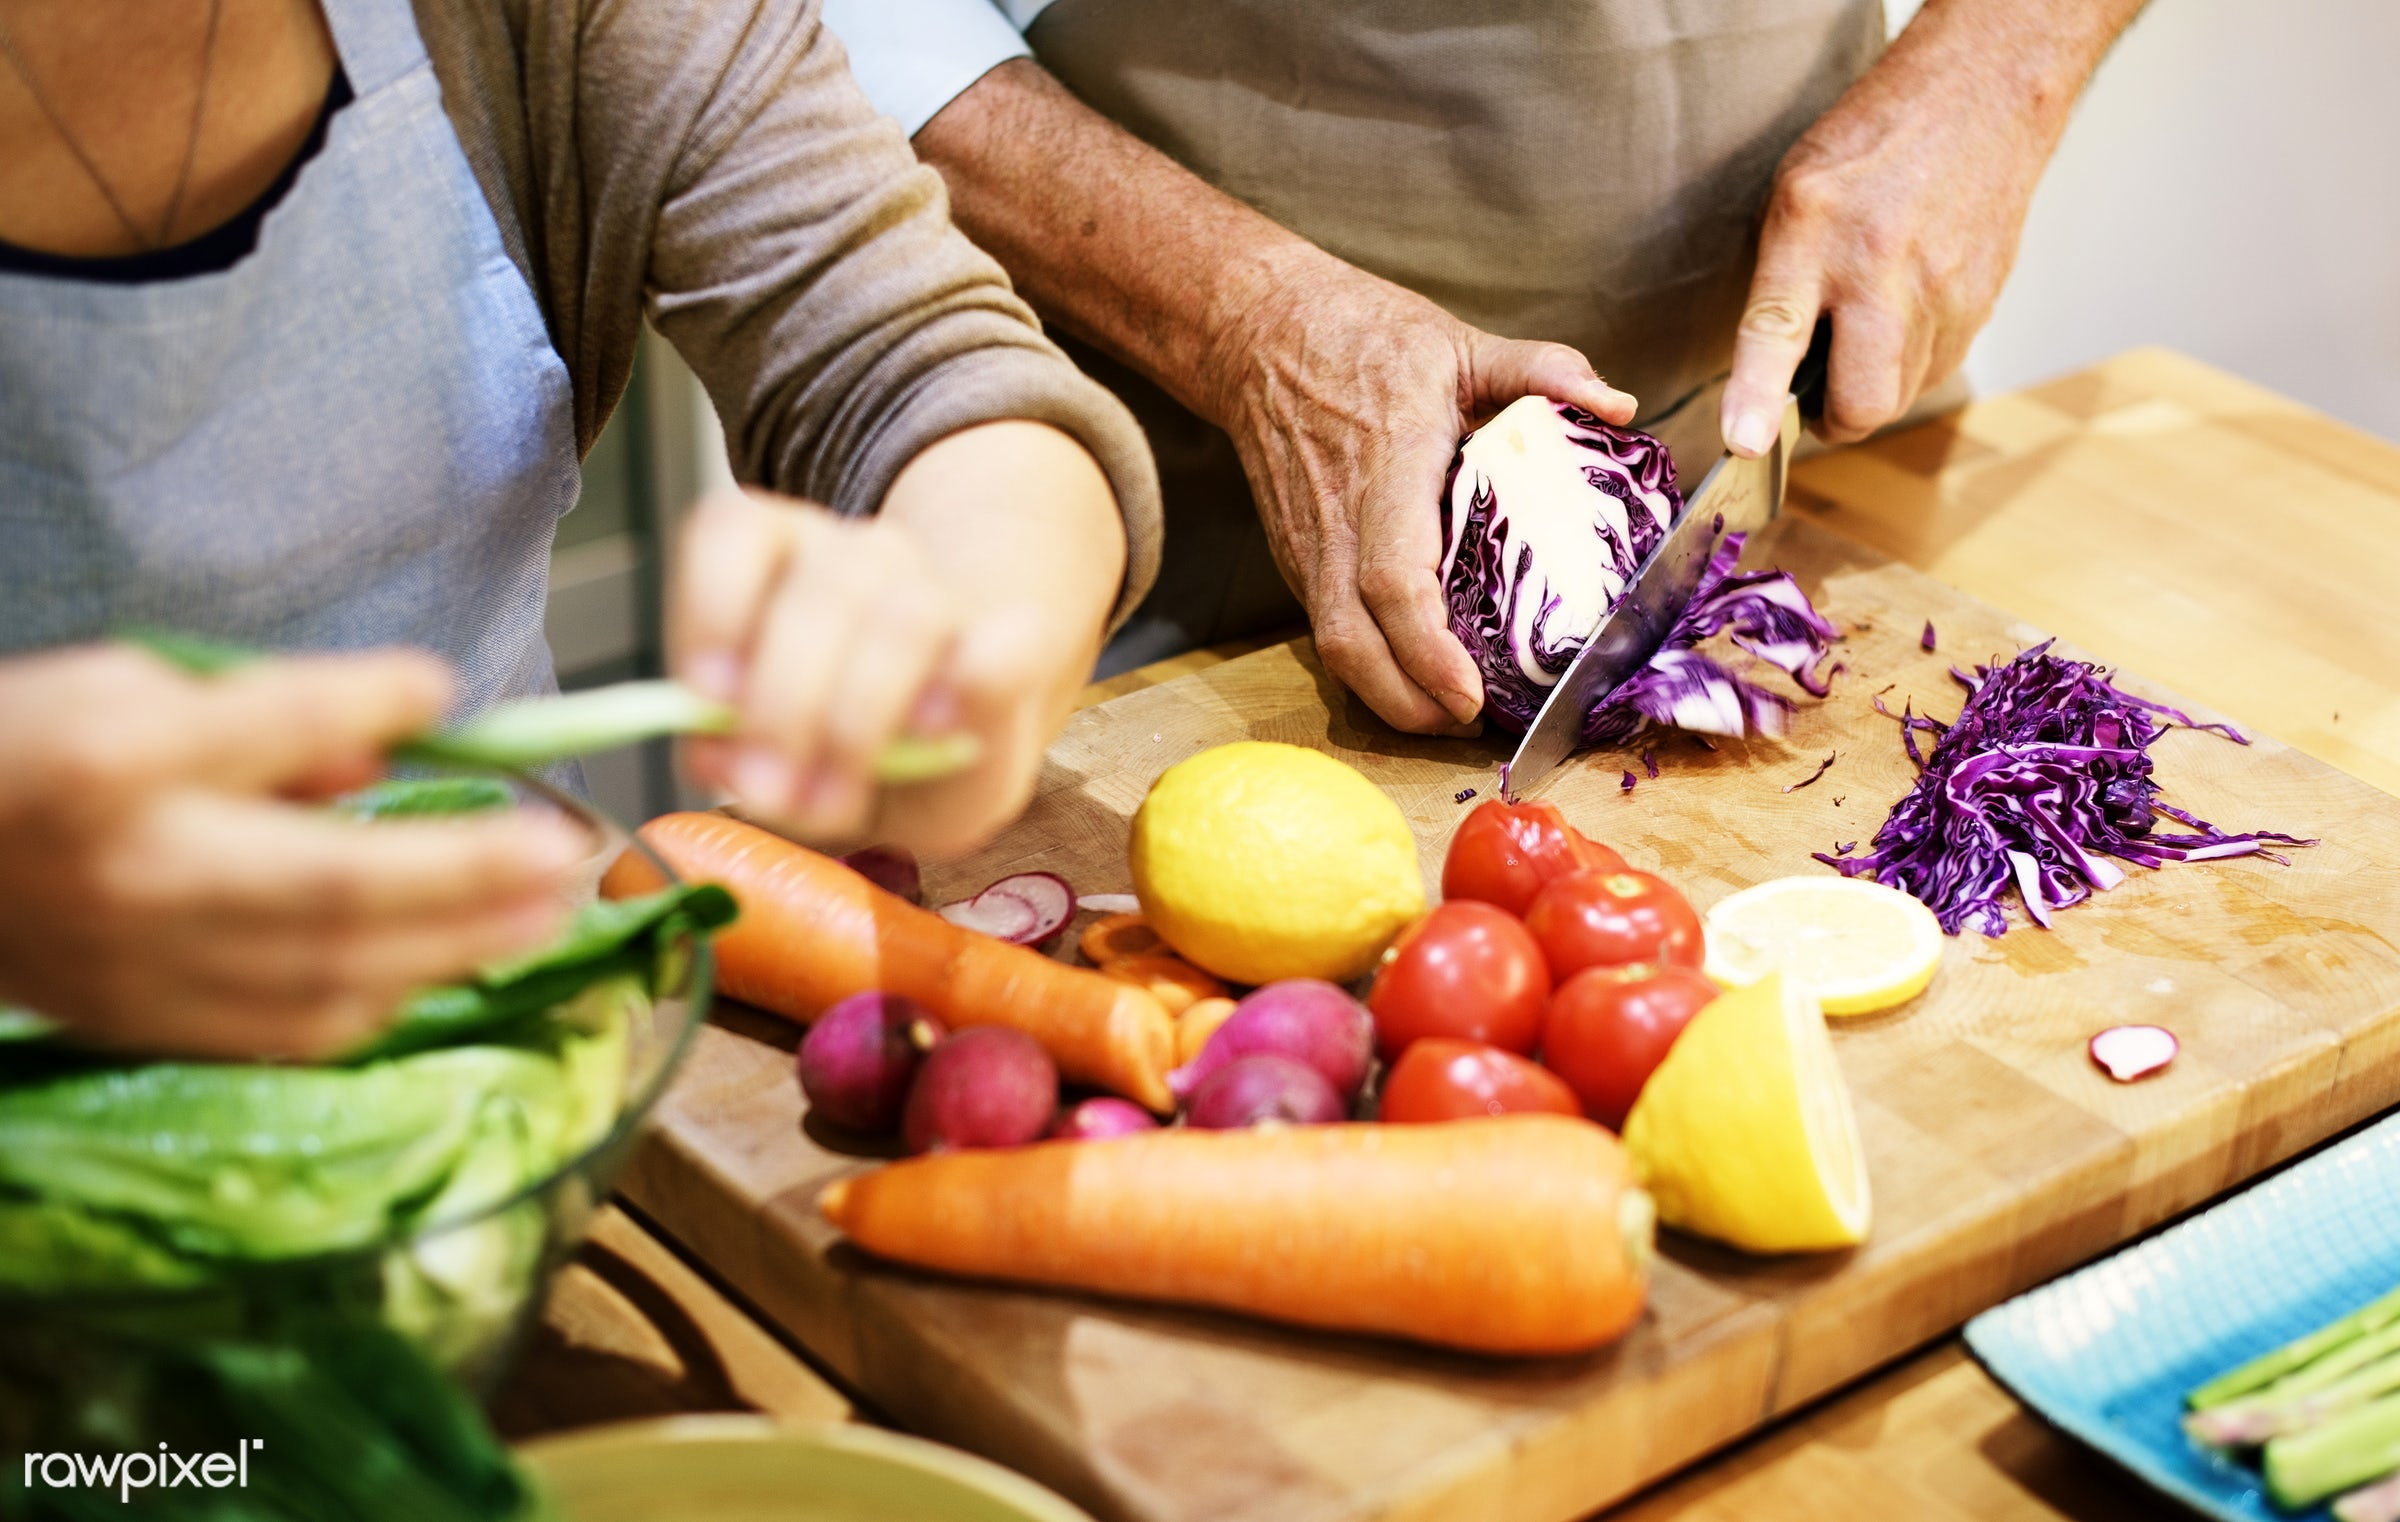 Senior couple cooking together in the kitchen - cooking, chopping, activity, adult, apron, breakfast, care, casual, cheerful...